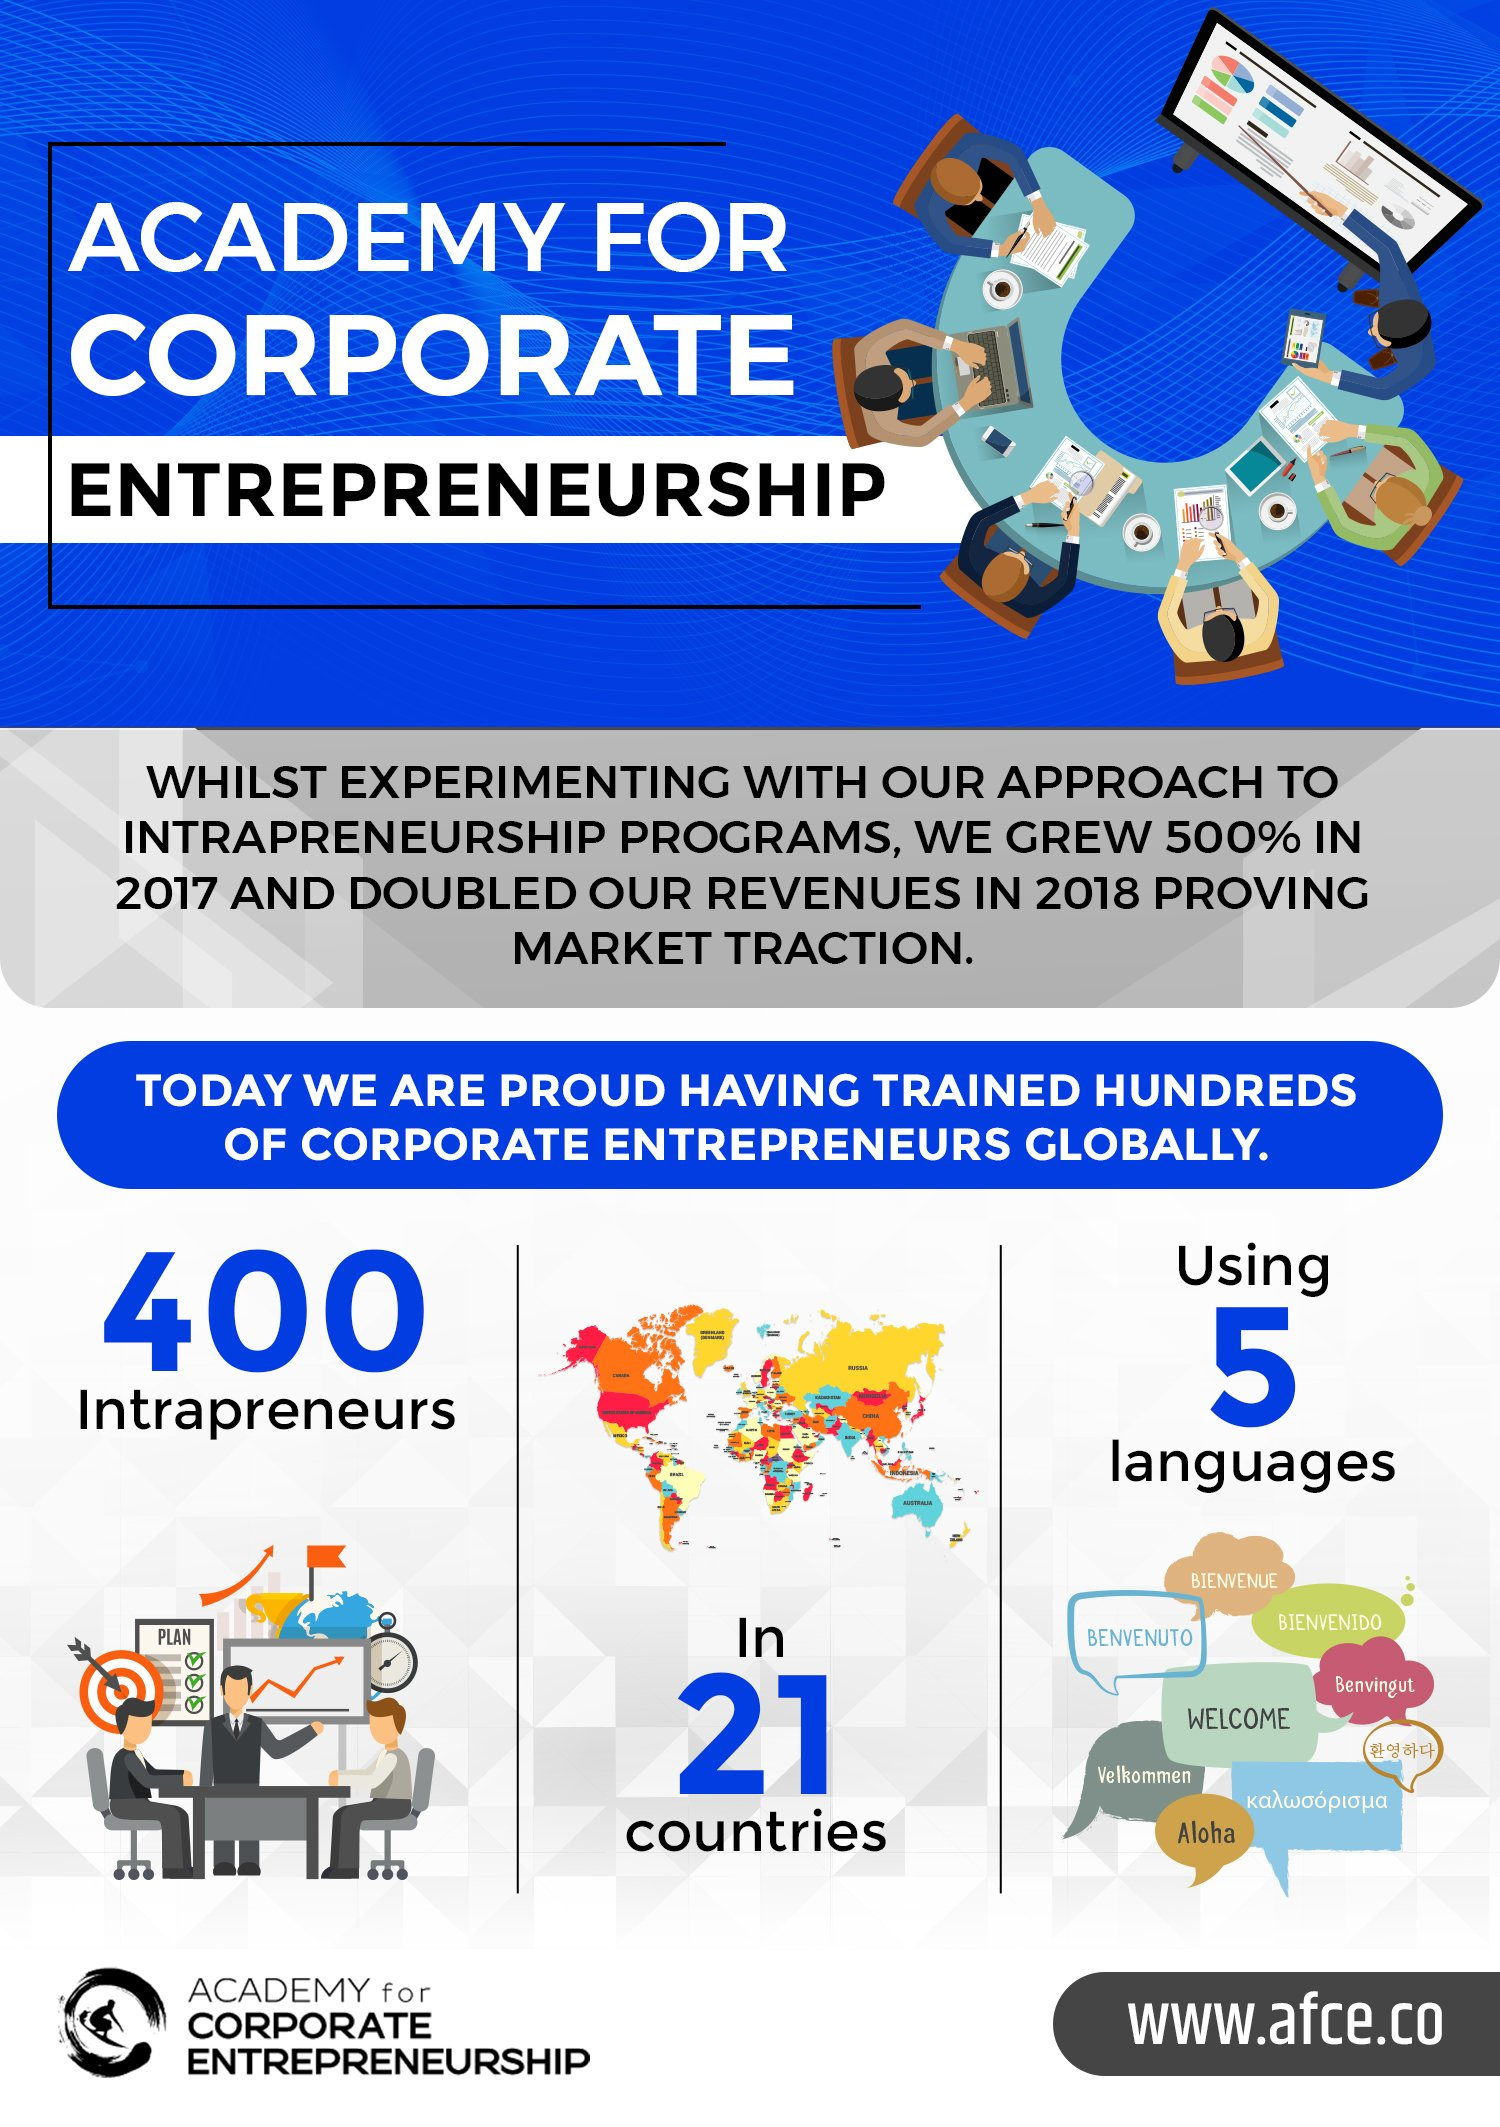 Academy-for-Corporate-Entrepreneurship-infographic-plaza